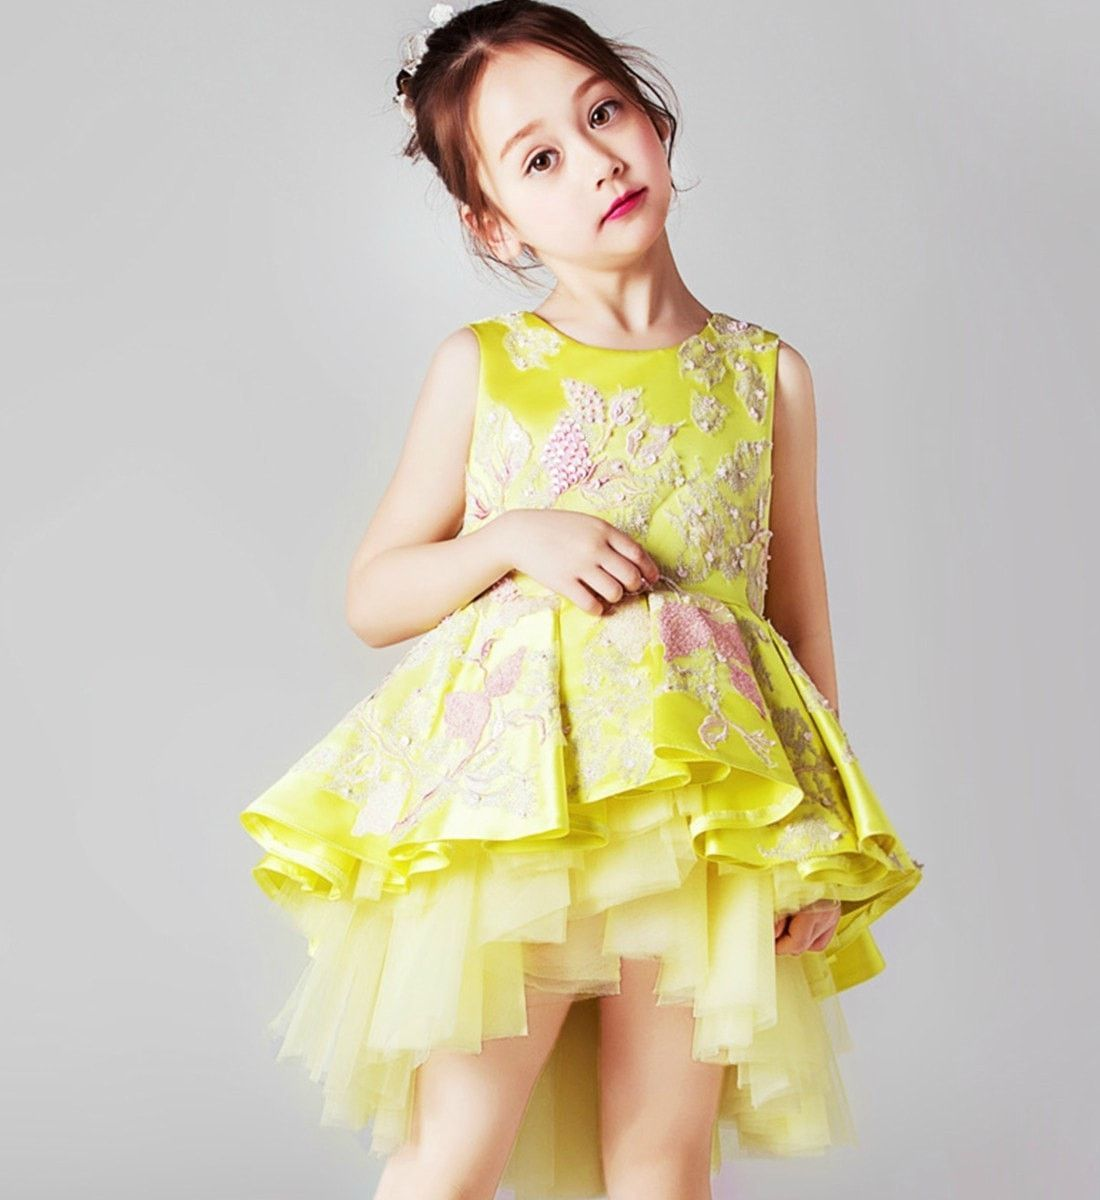 aedf00ca8248e Floral High Low Gown   kids wear   Dresses, Birthday girl dress ...